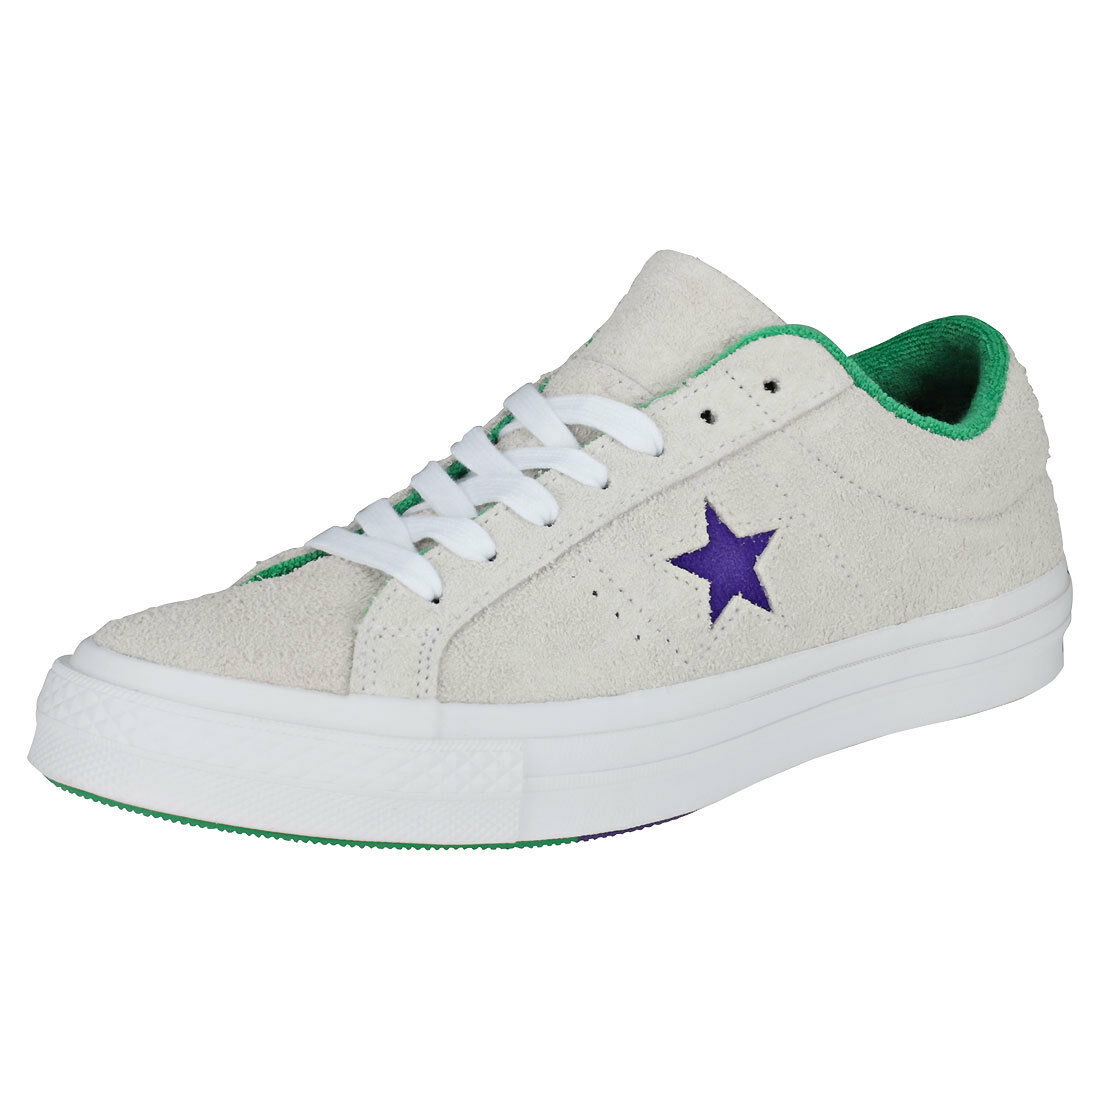 Converse One Star Ox Mens White Purple Suede Trainers - 8 UK